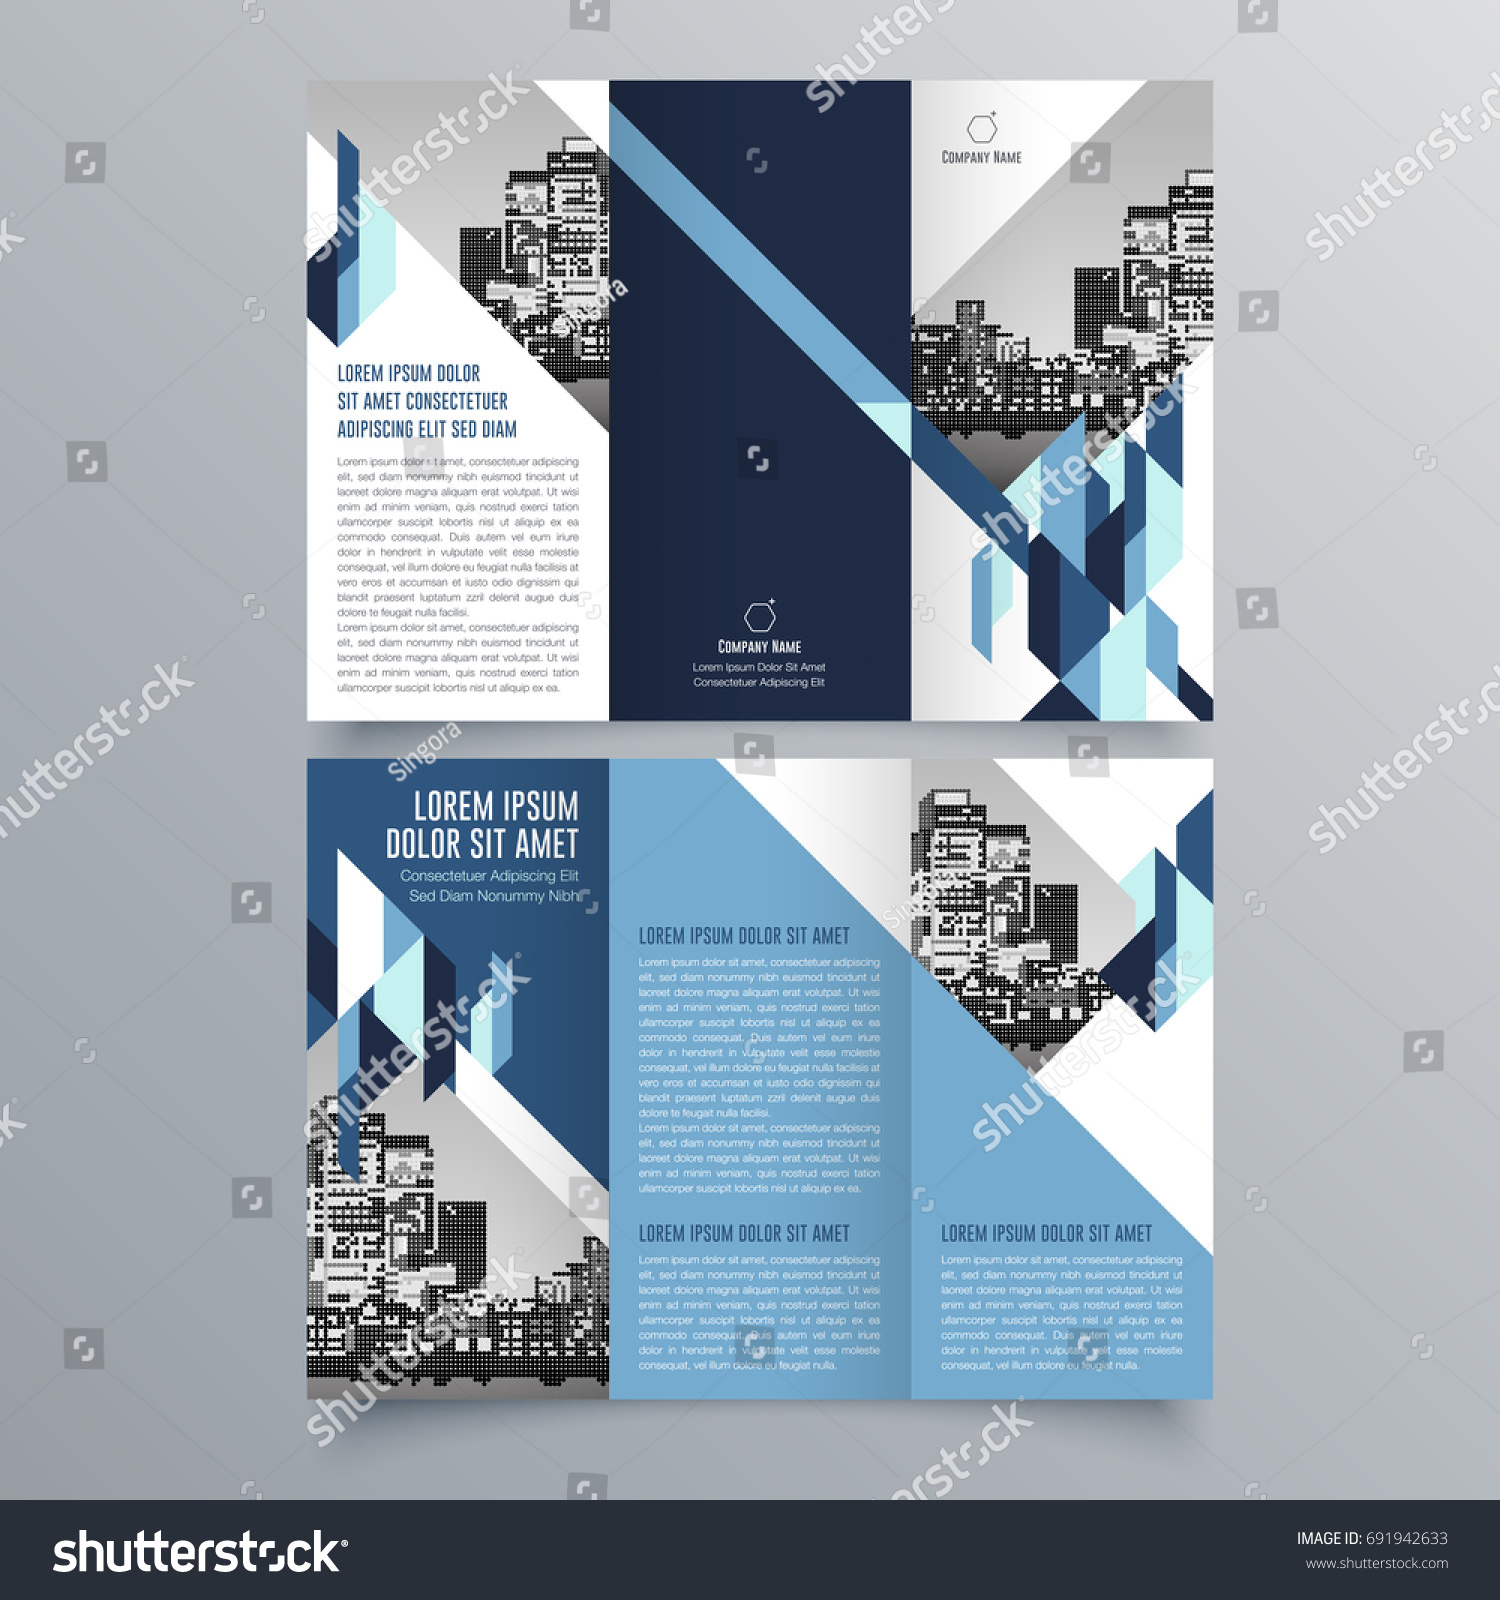 Brochure Design Brochure Template Creative Trifold Stock Vector - Cool brochure templates